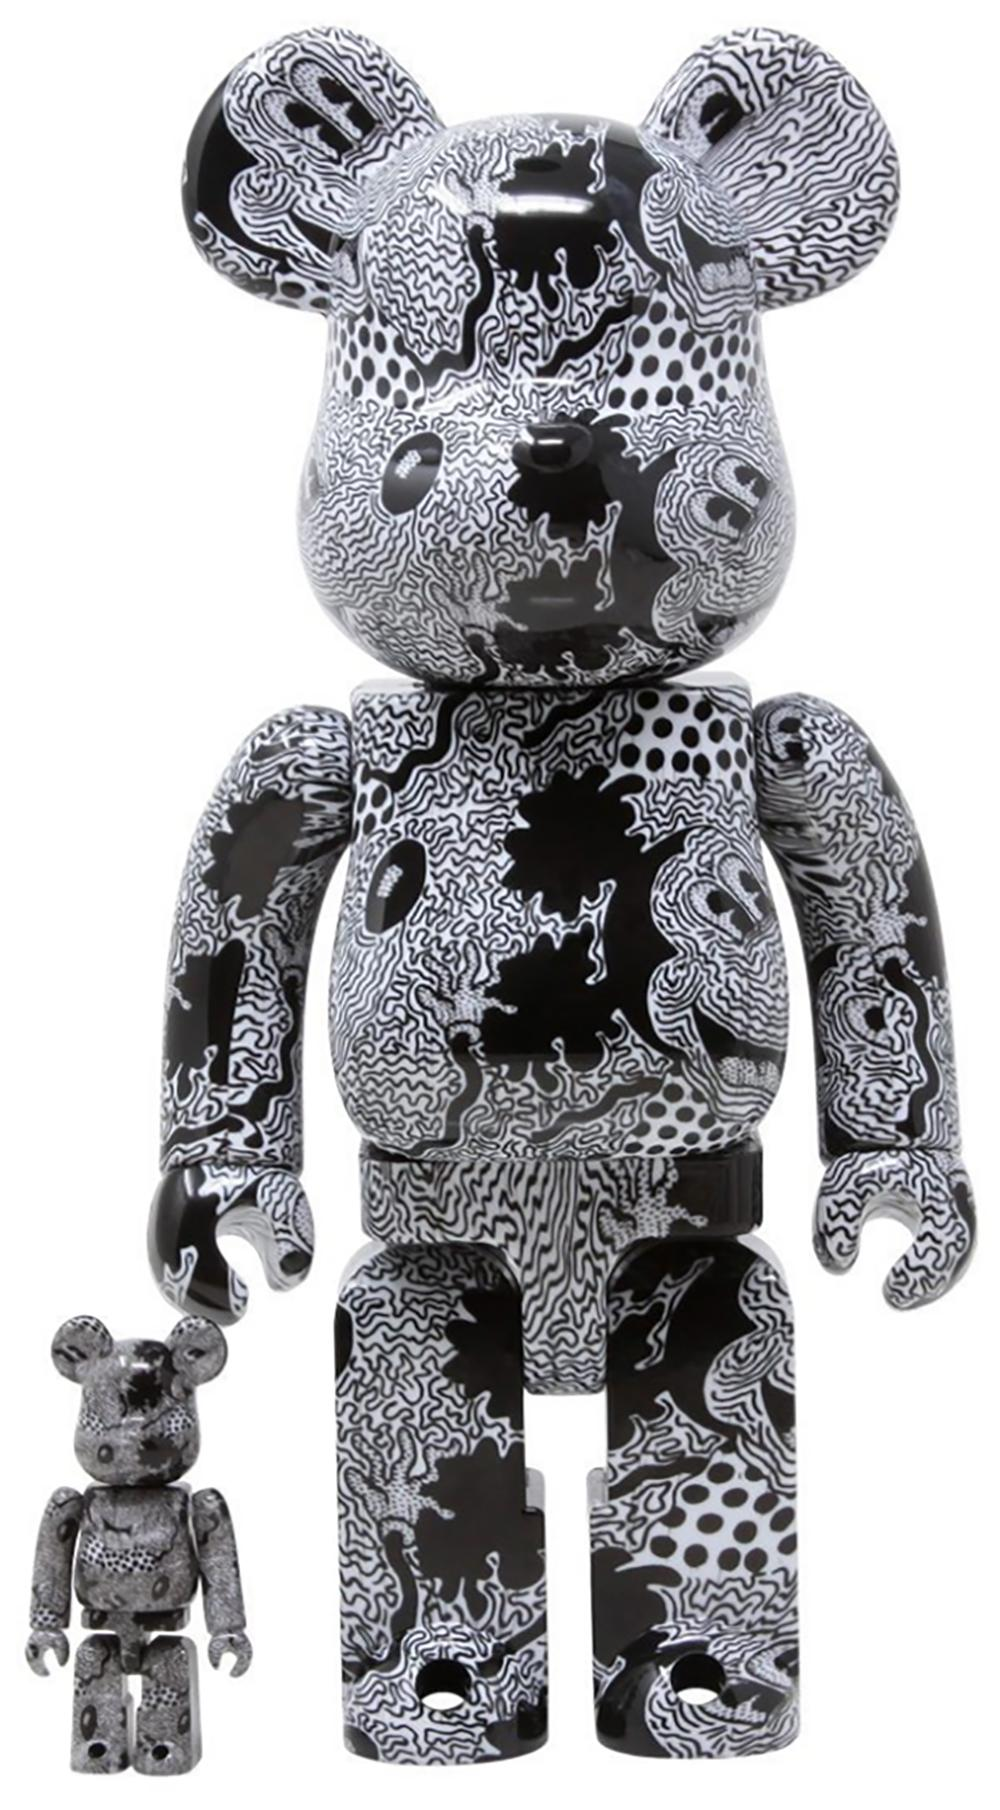 Keith Haring Bearbrick 400% Companion (Haring Mickey Mouse BE@RBRICK)